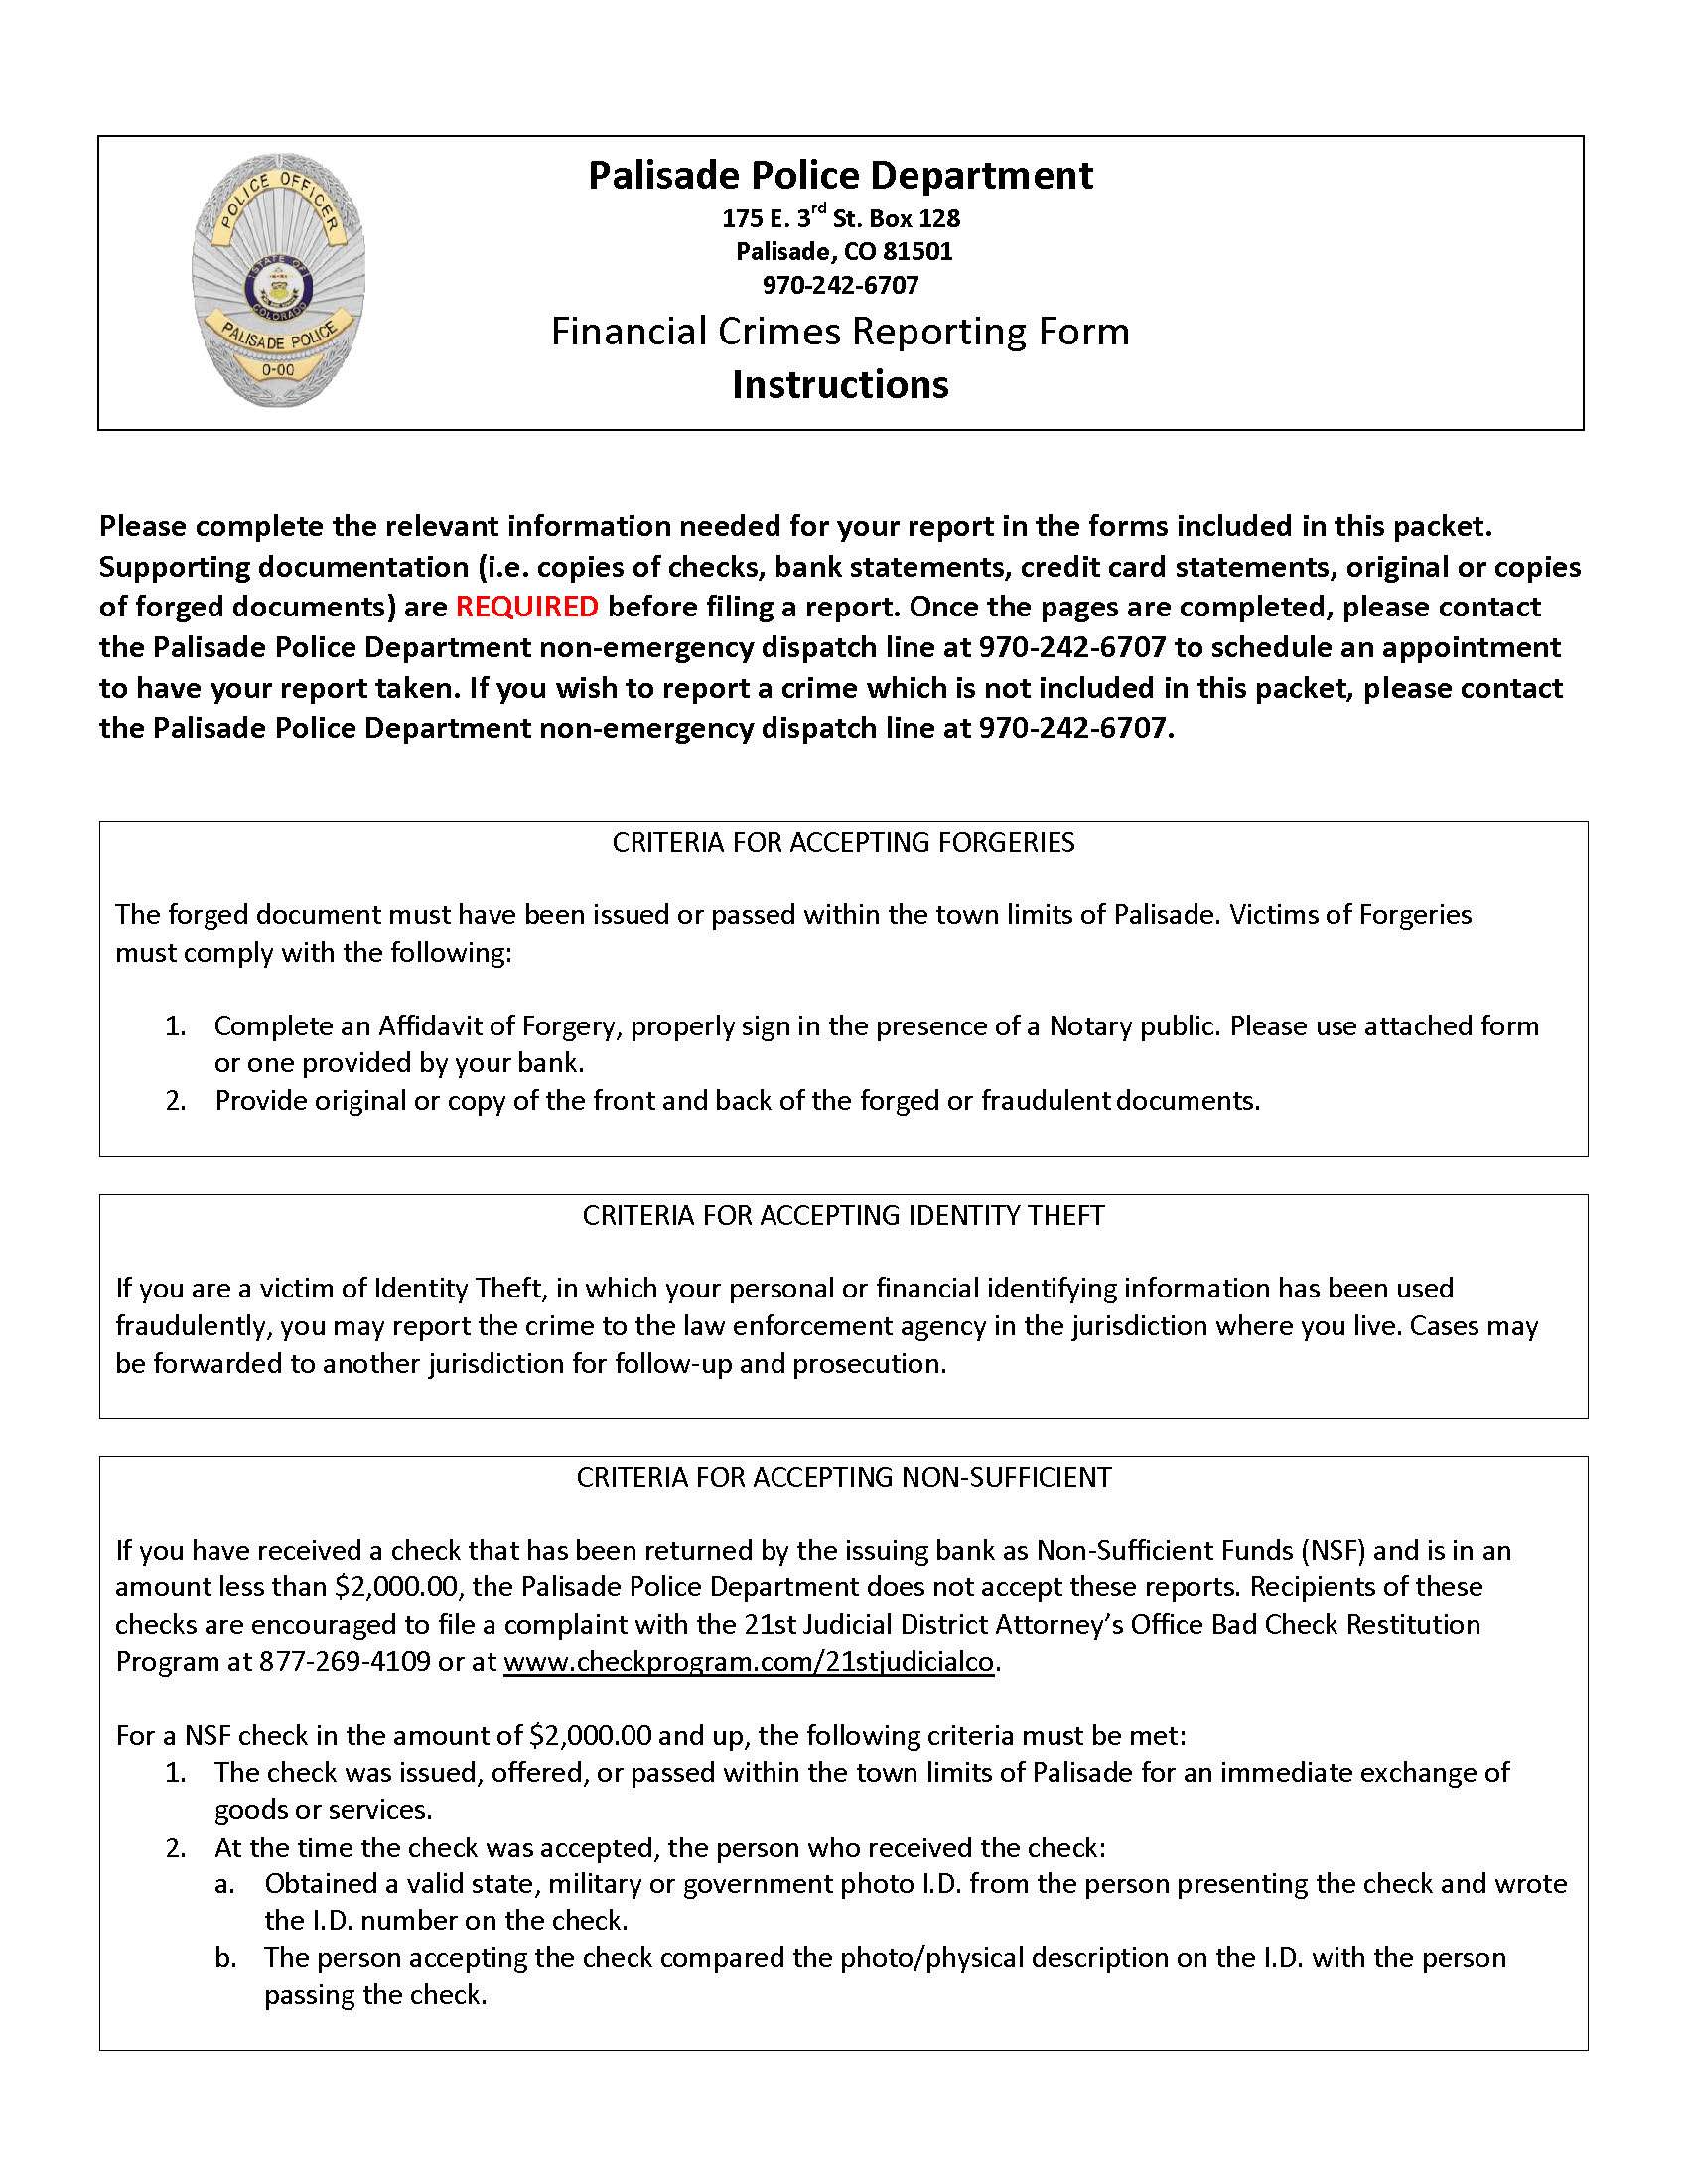 PPD Fraud Packet Page 1